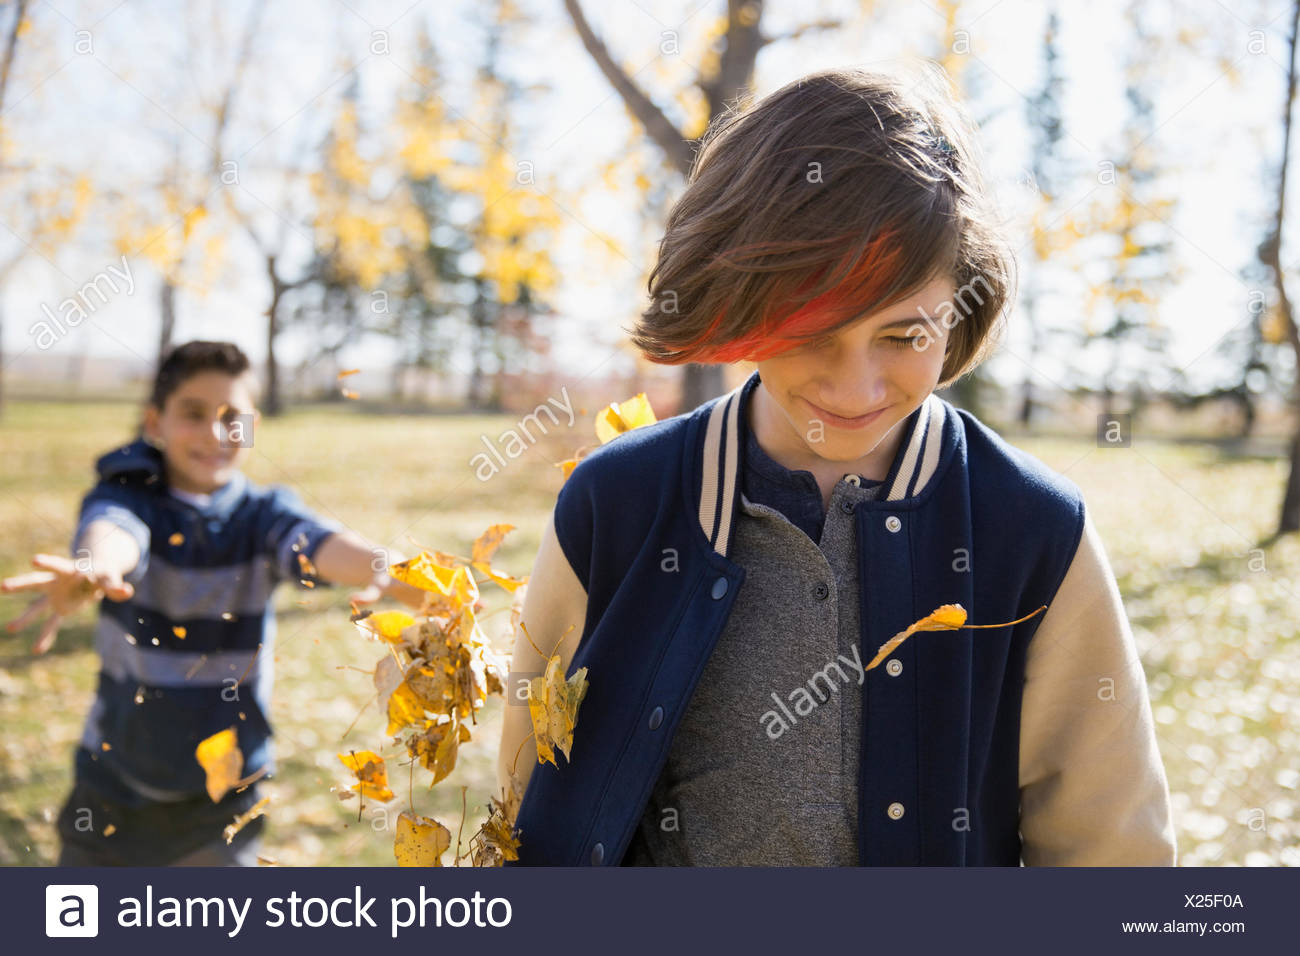 Playful tween boys throwing autumn leaves in sunny park - Stock Image